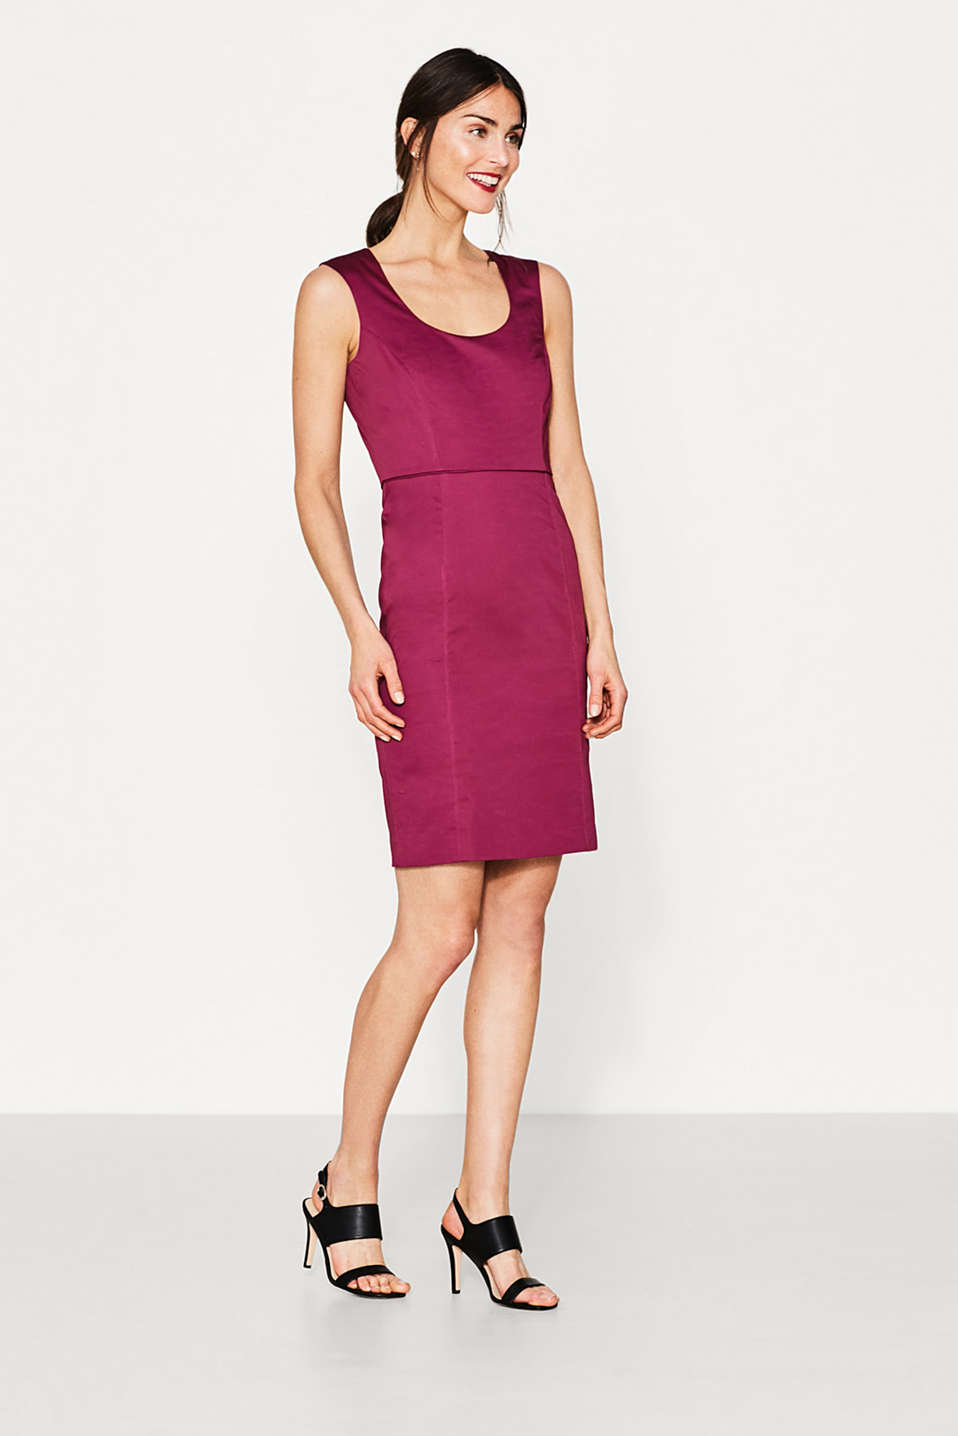 Esprit - Sheath dress in cotton/stretch